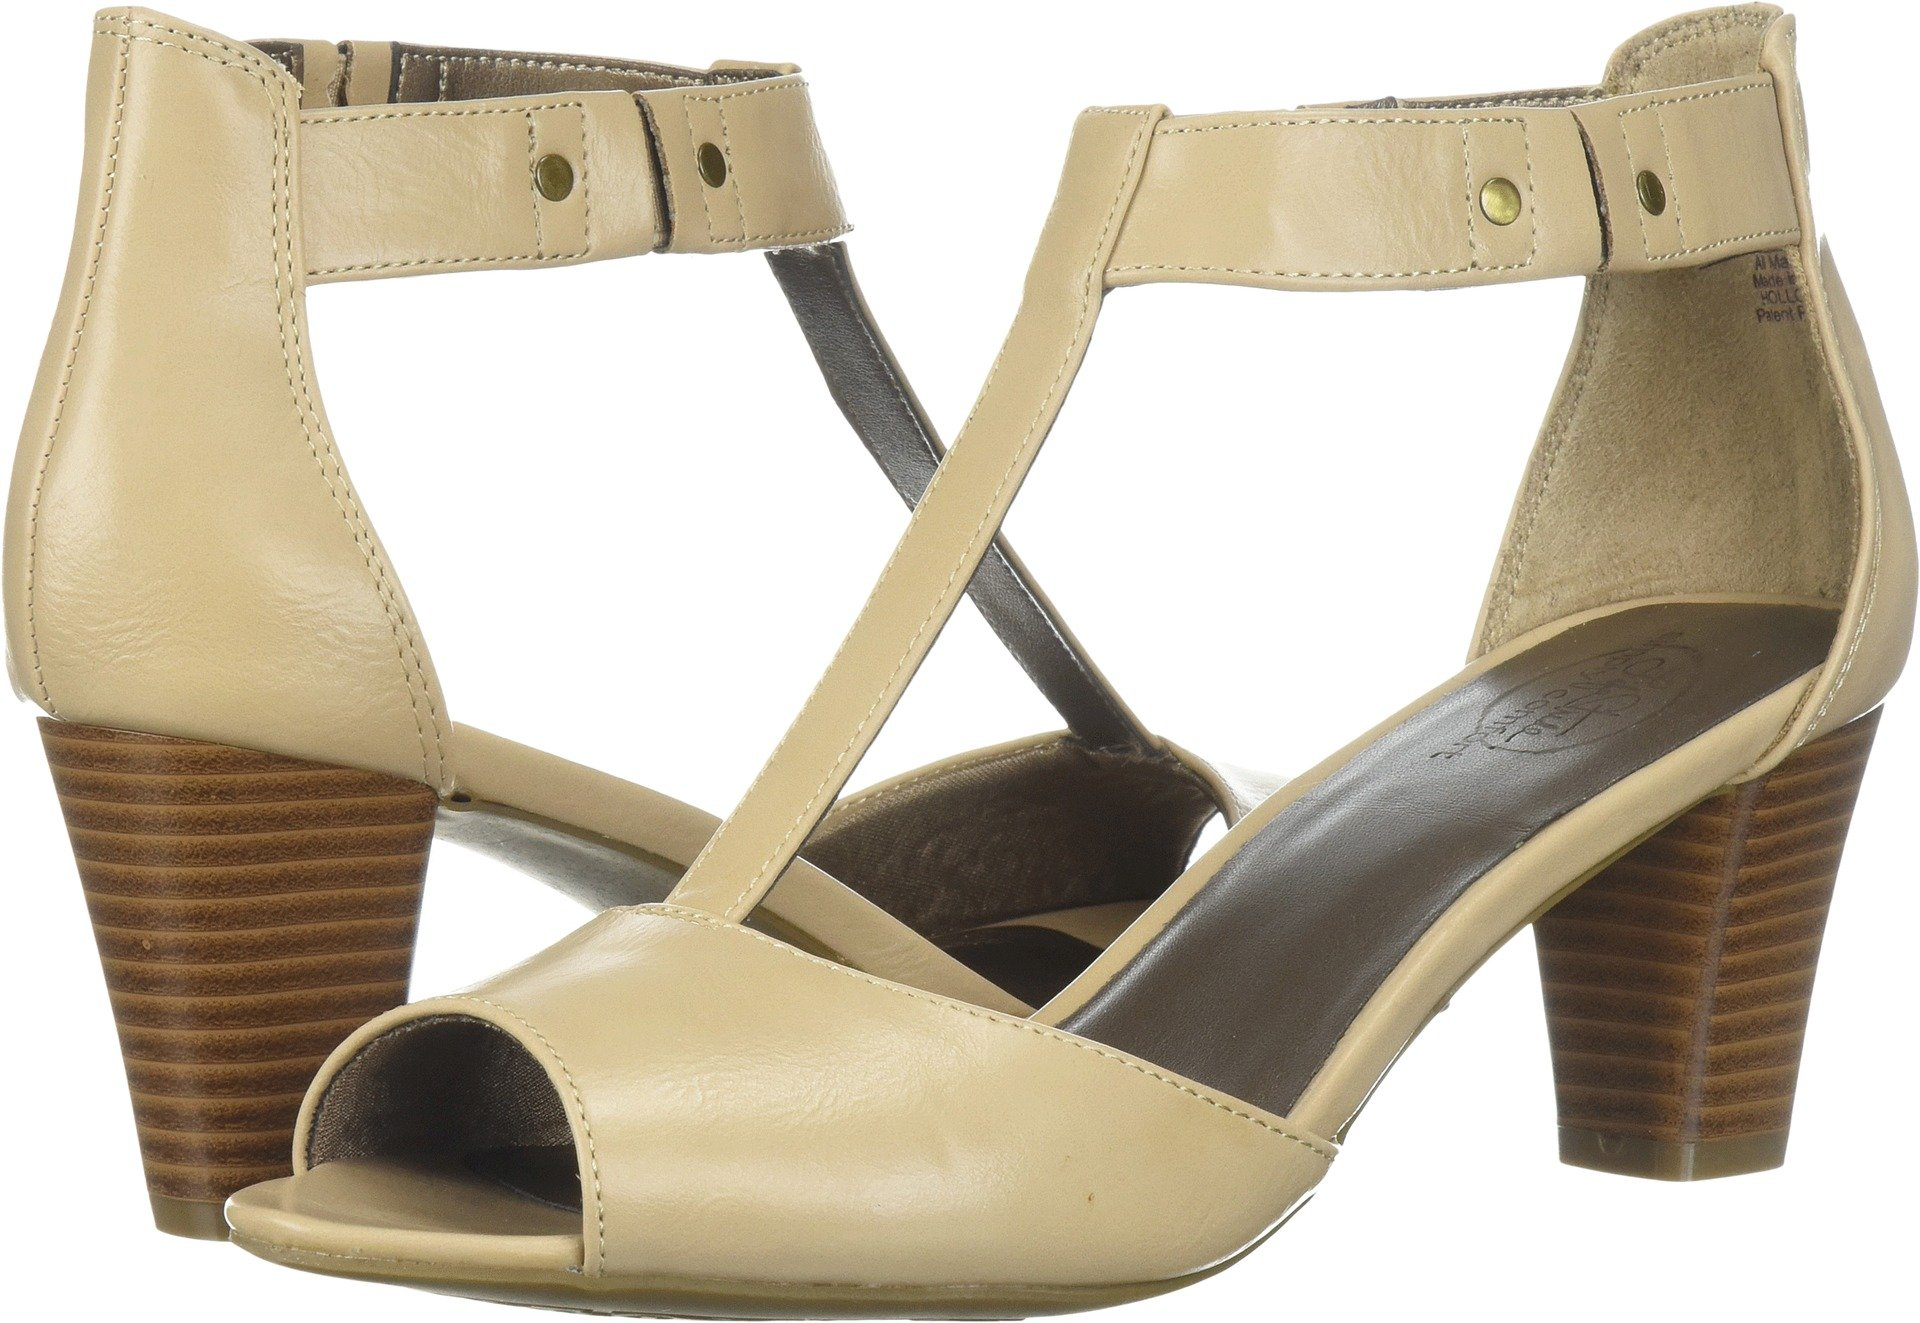 LifeStride Women's Holloway Heeled Sandal, Taupe, 6.5 M US